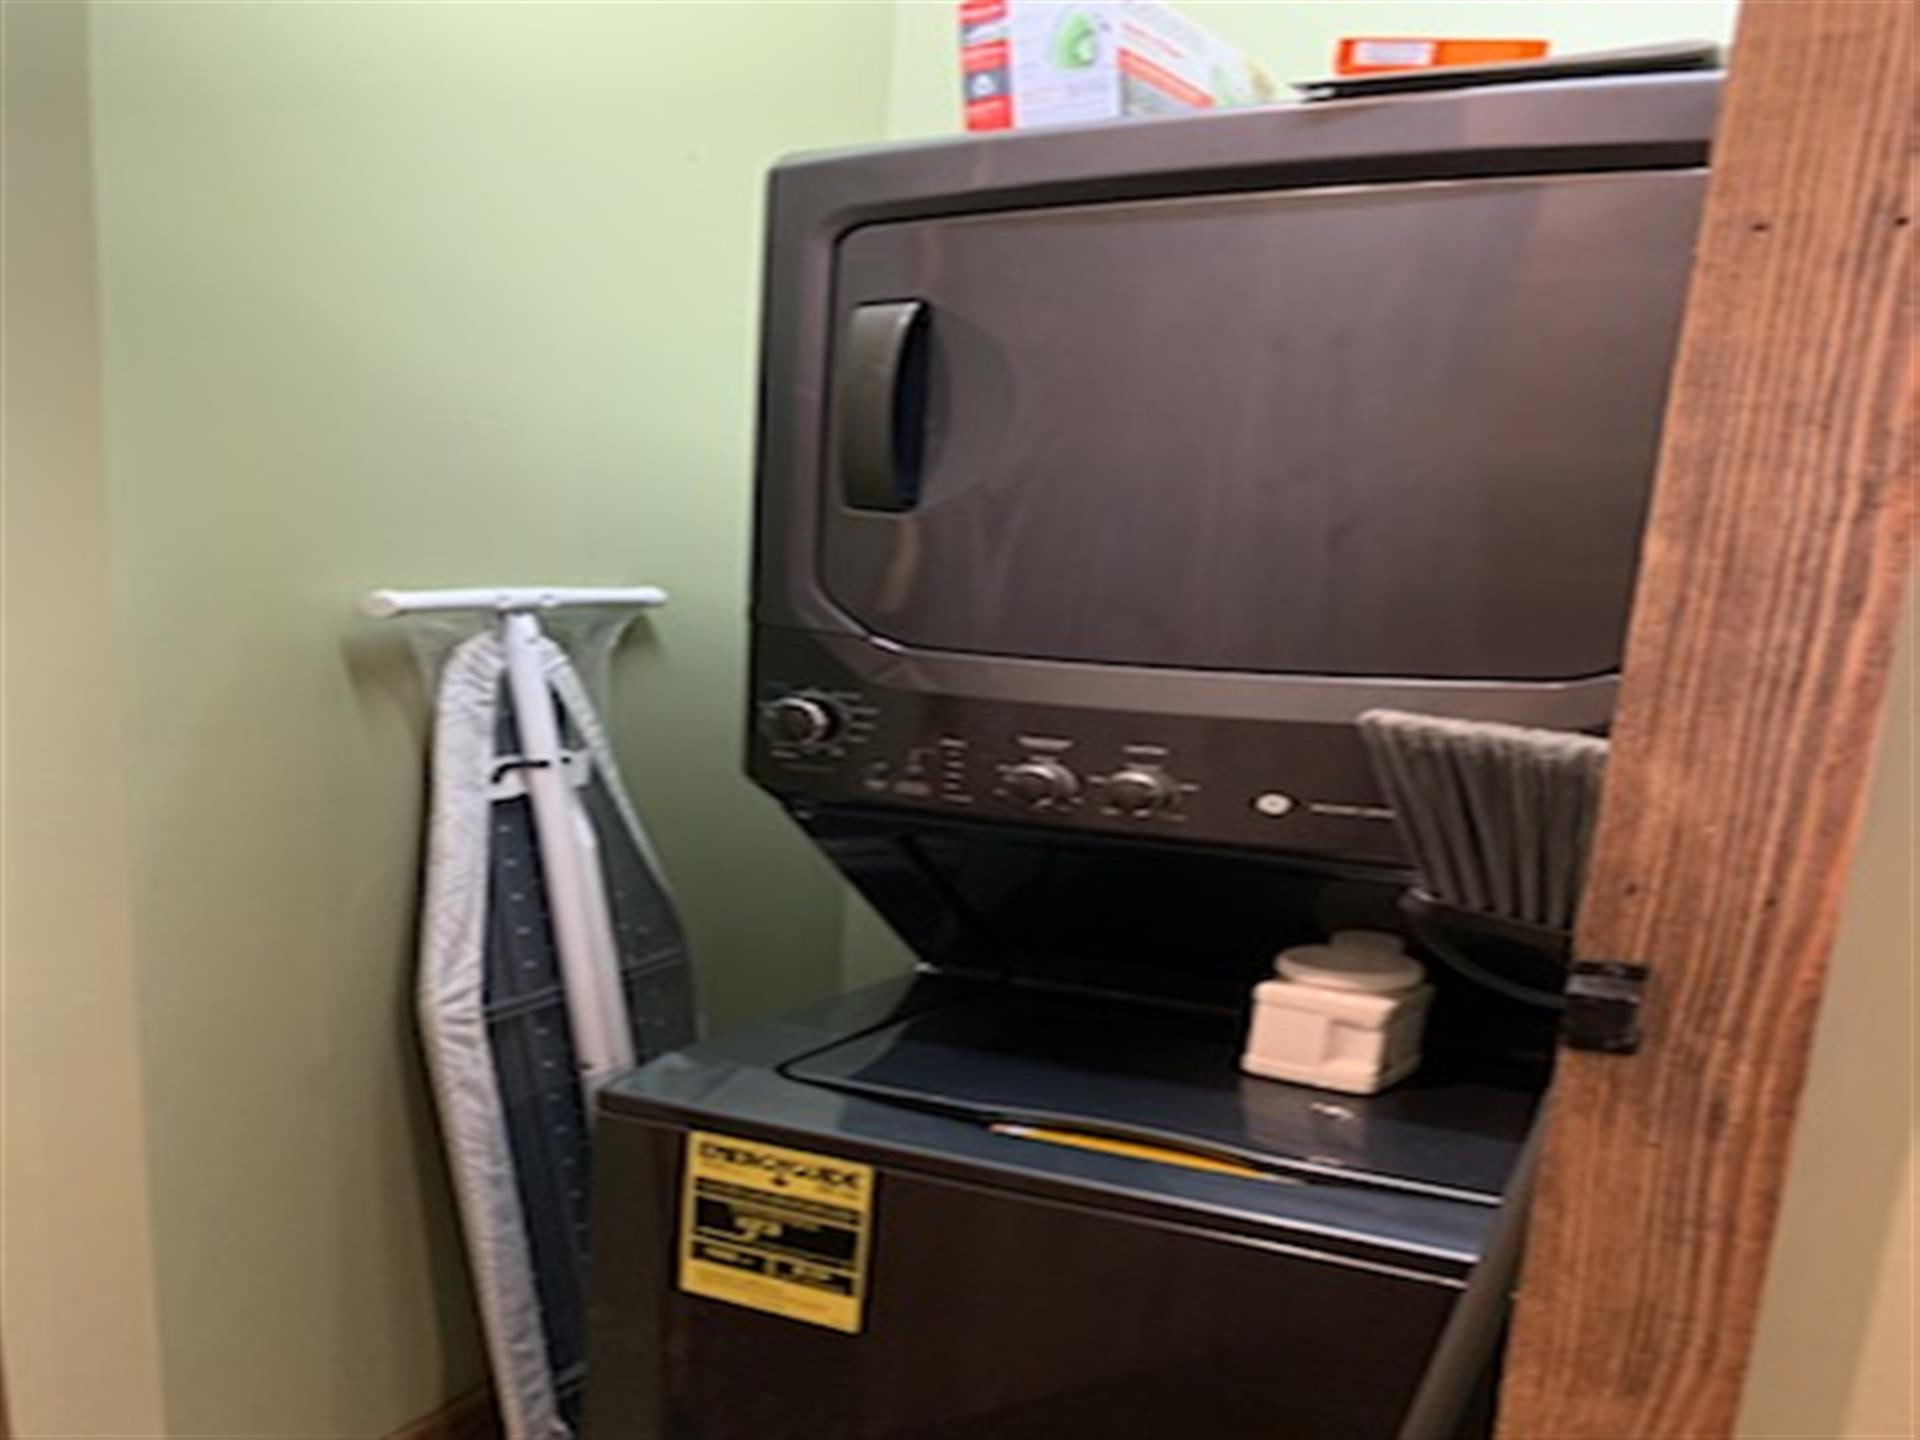 dryer on top of washer with iron board next to it against the wall